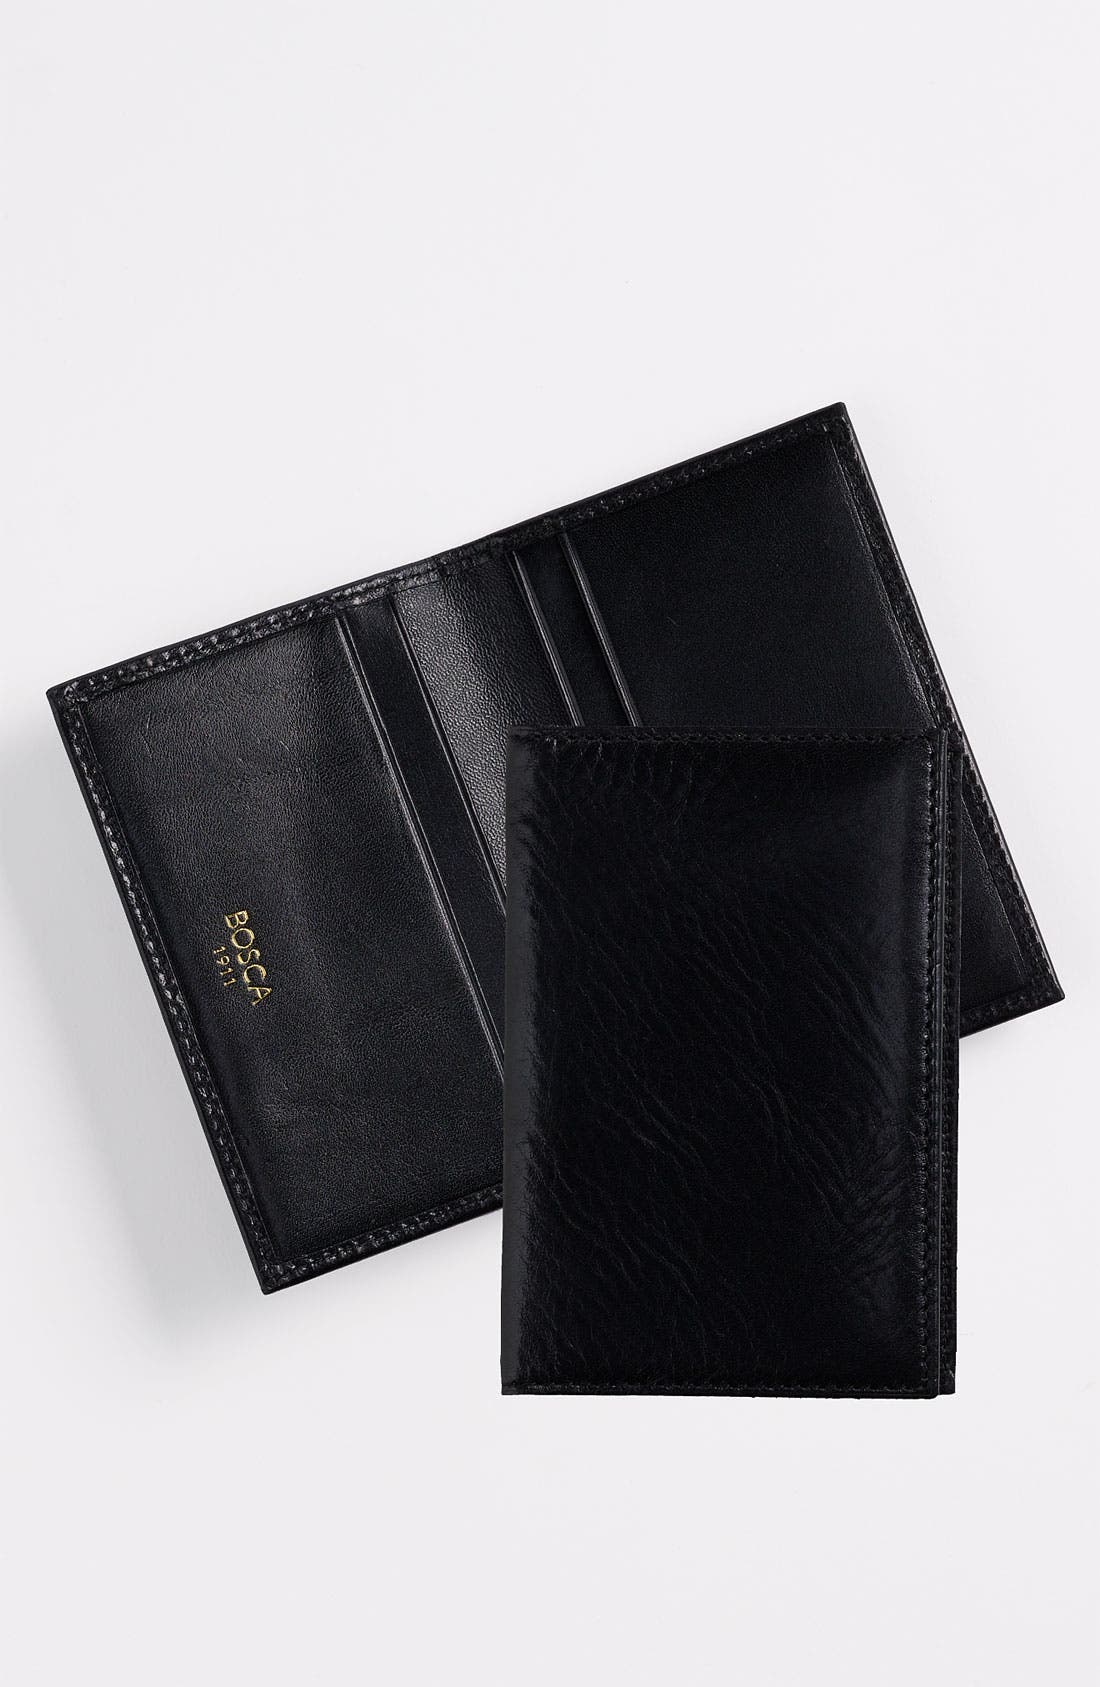 Calling Card Case,                         Main,                         color,